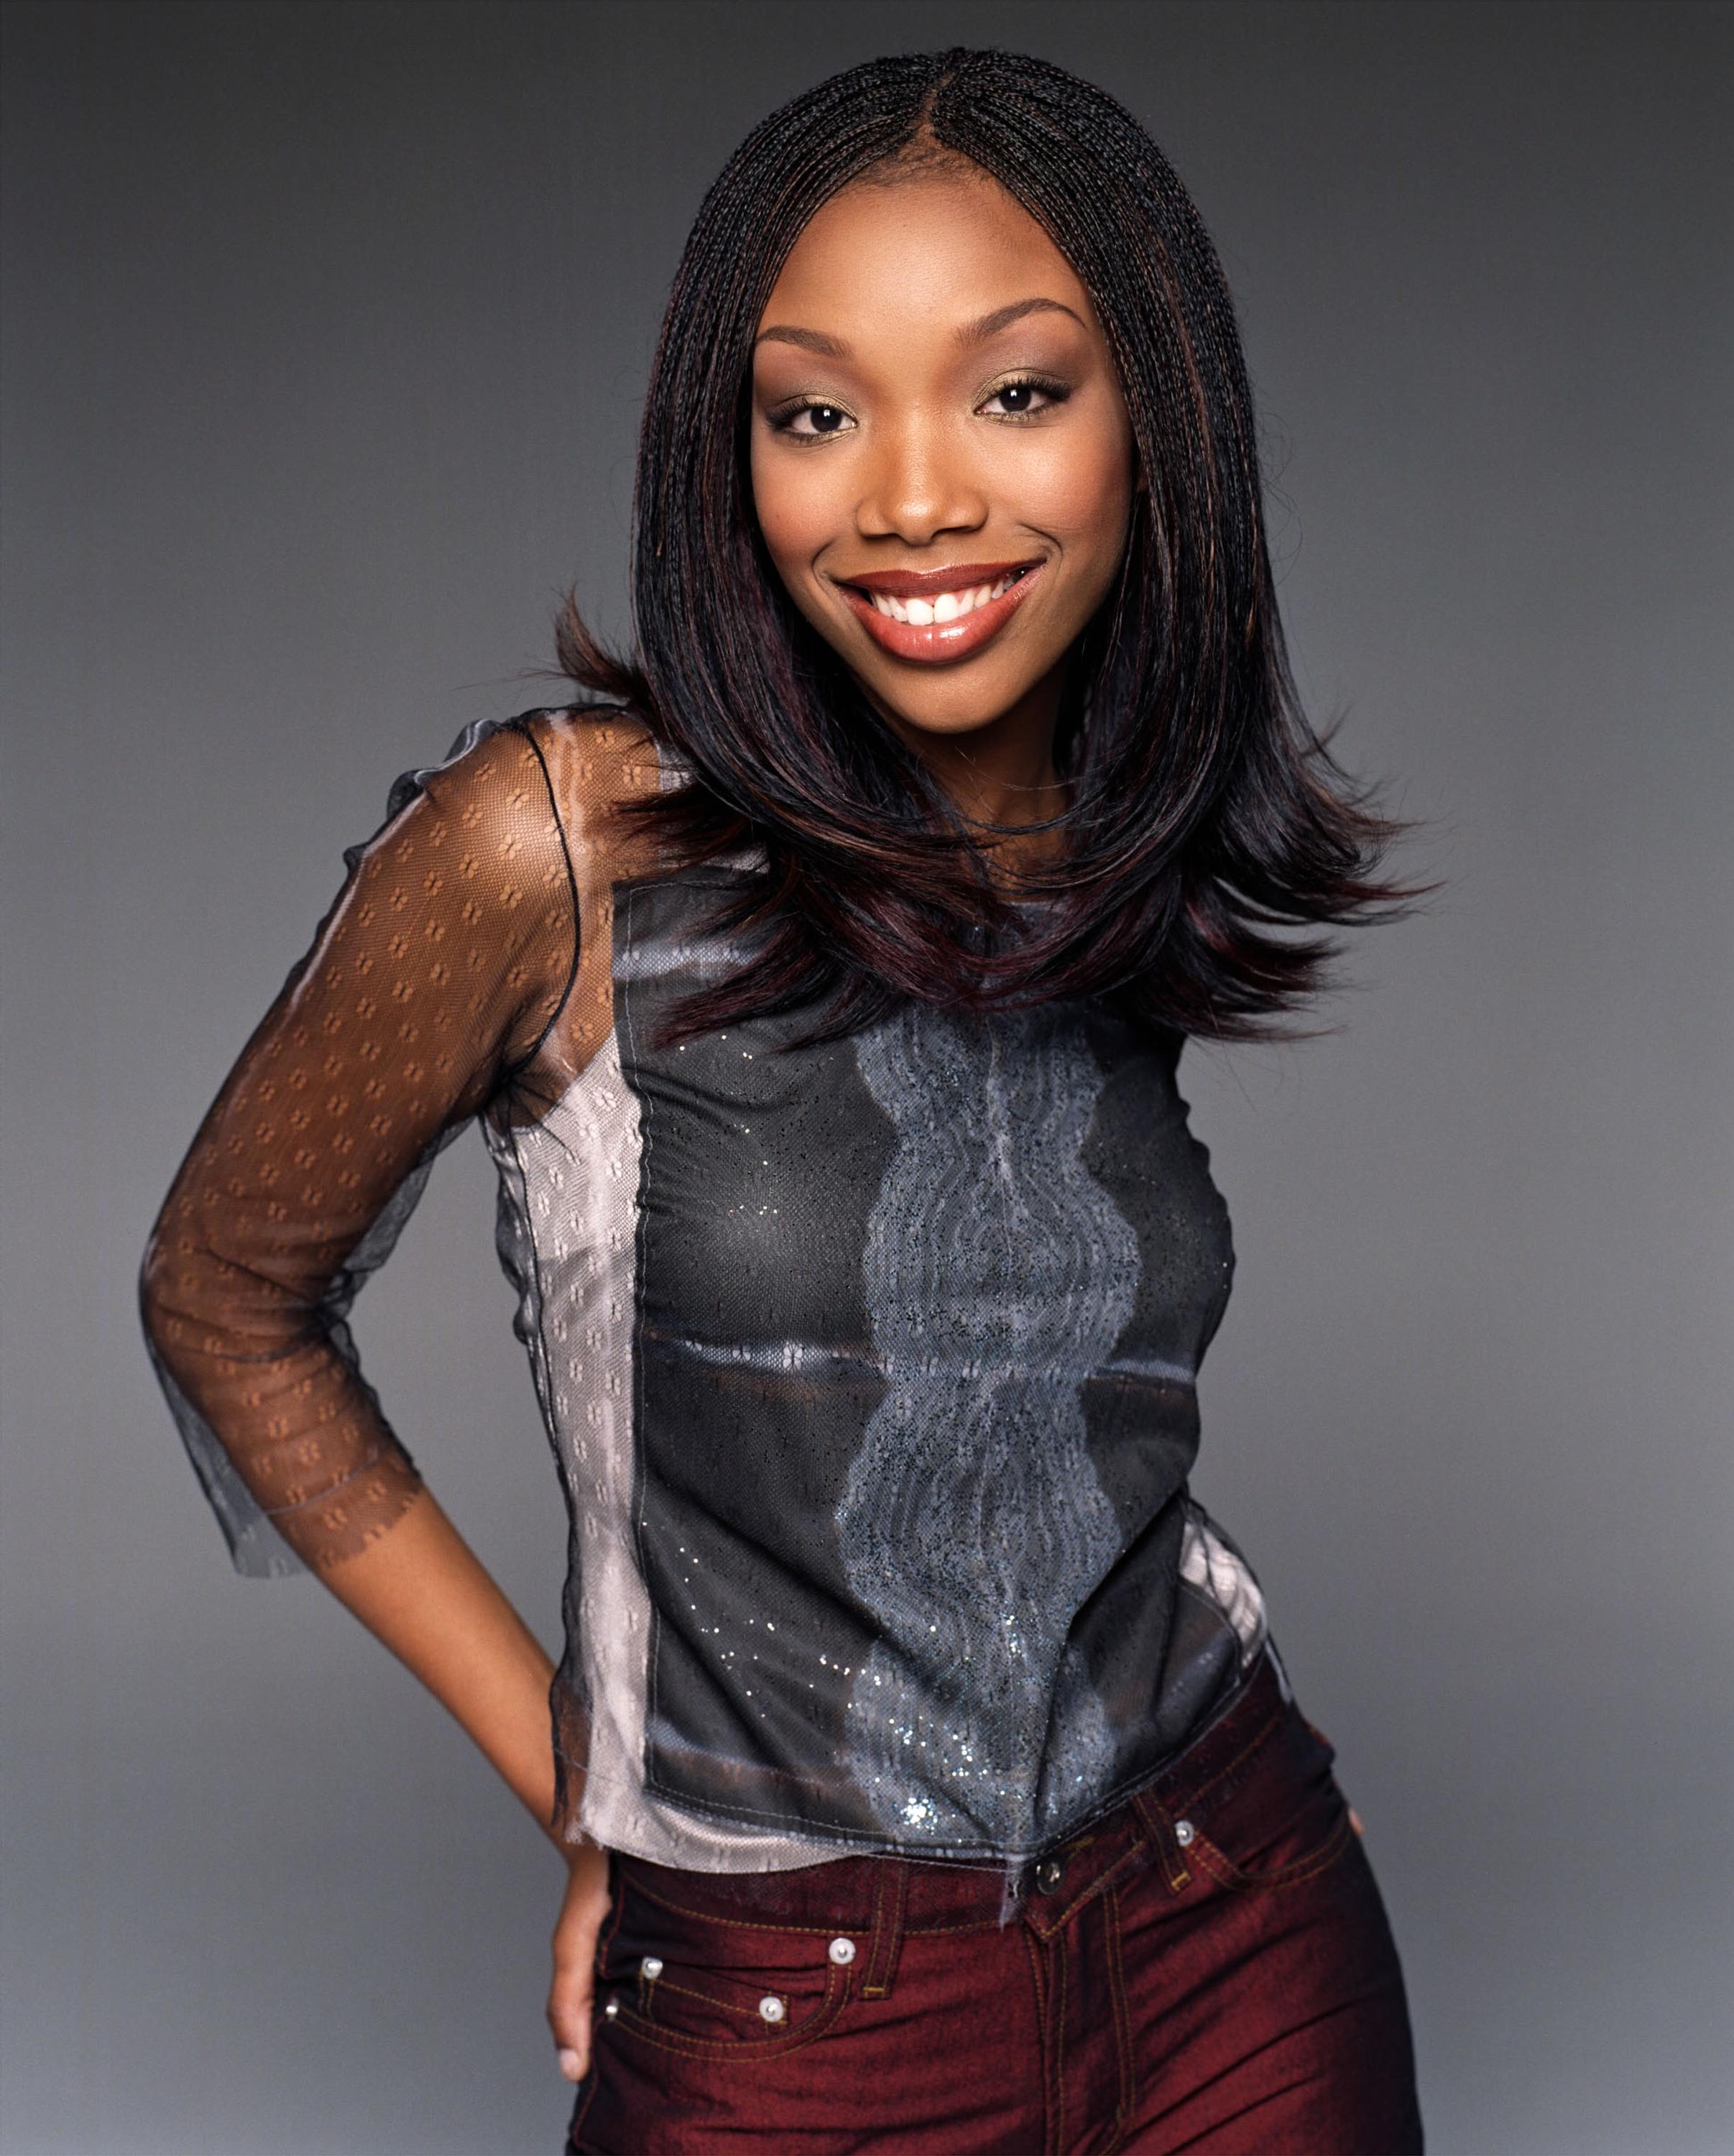 Brandy Norwood at an event for Moesha (1996)